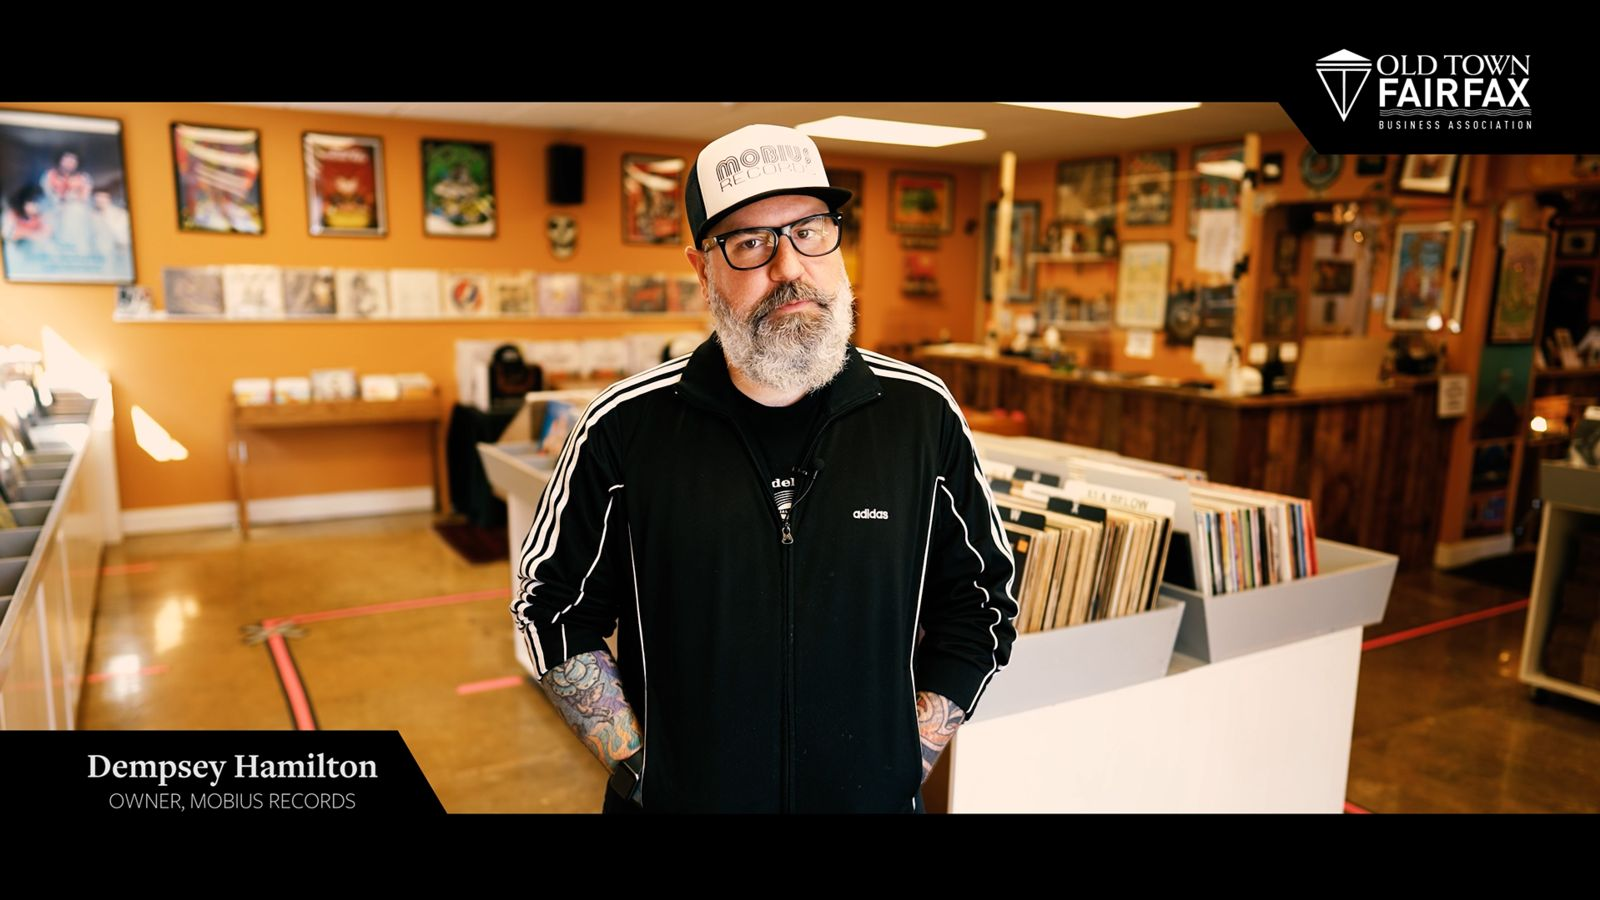 Mobius Records owner